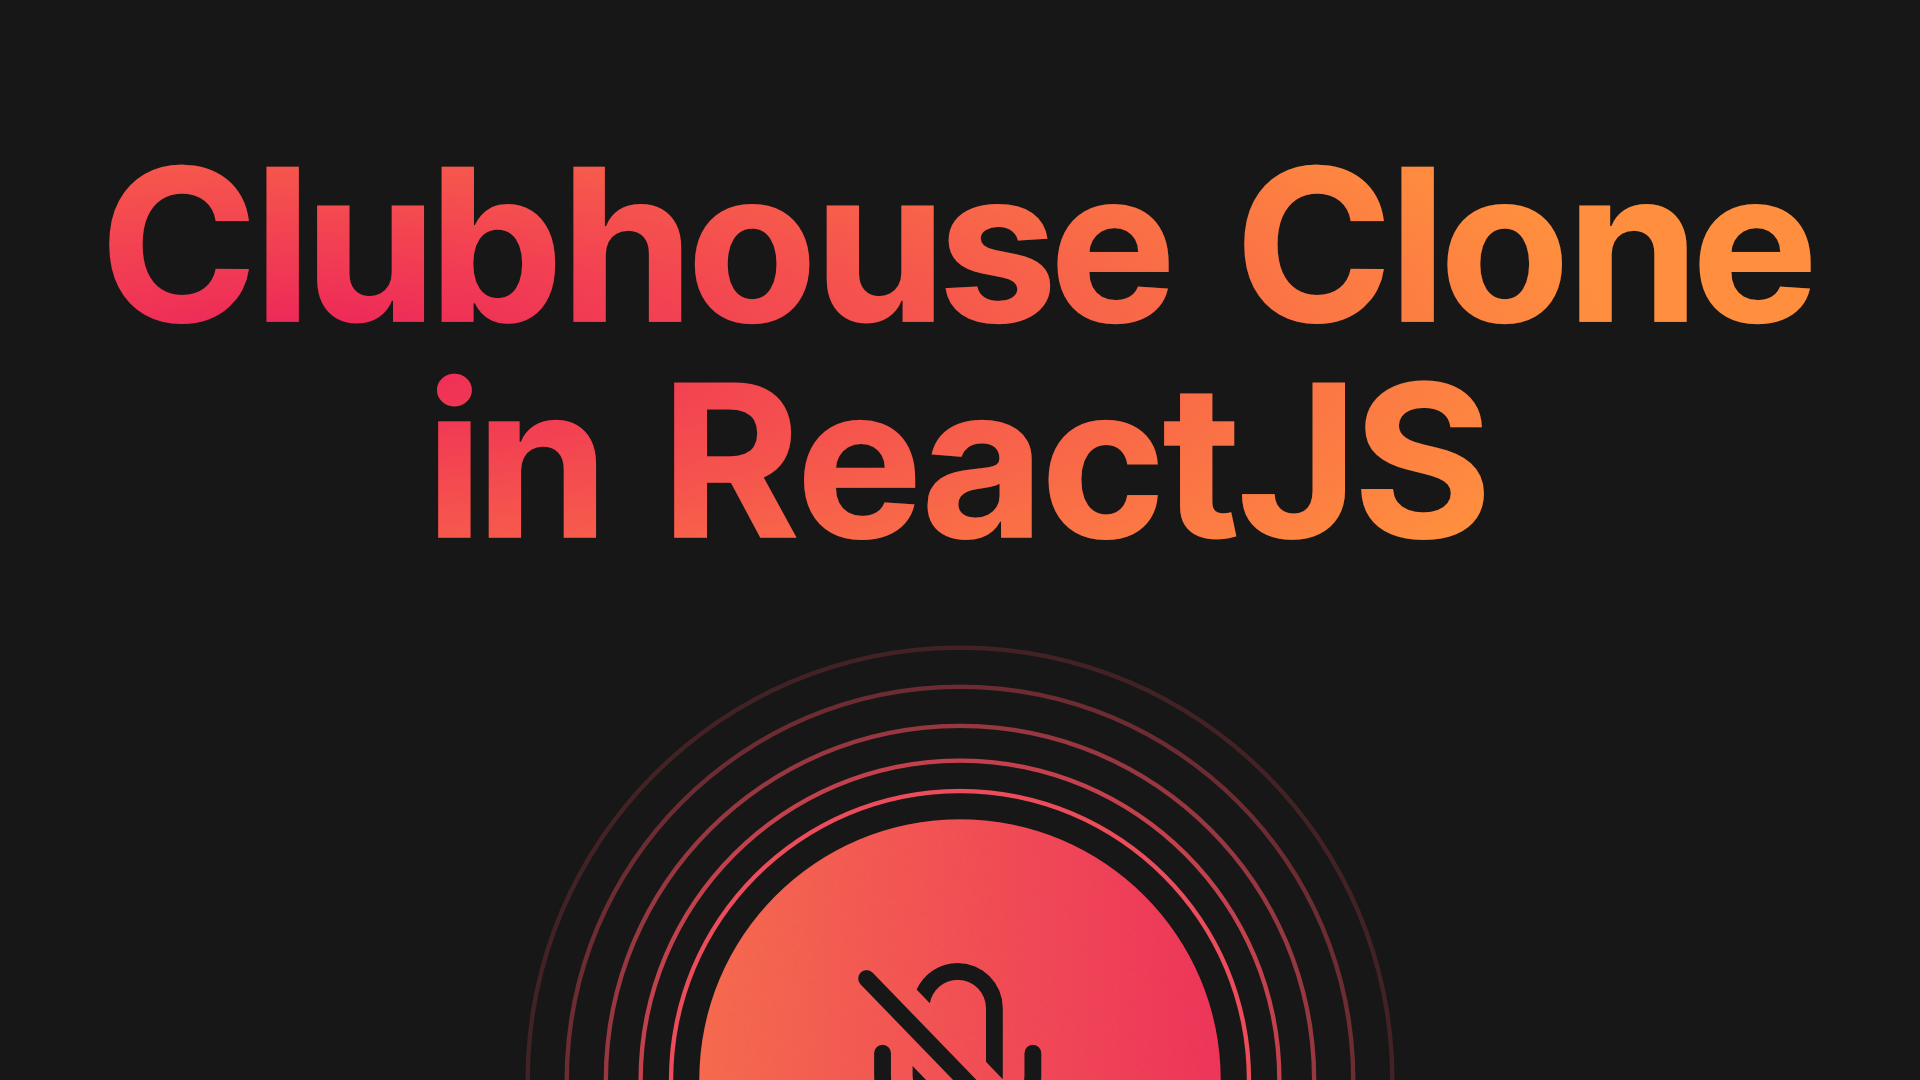 Clubhouse clone in React